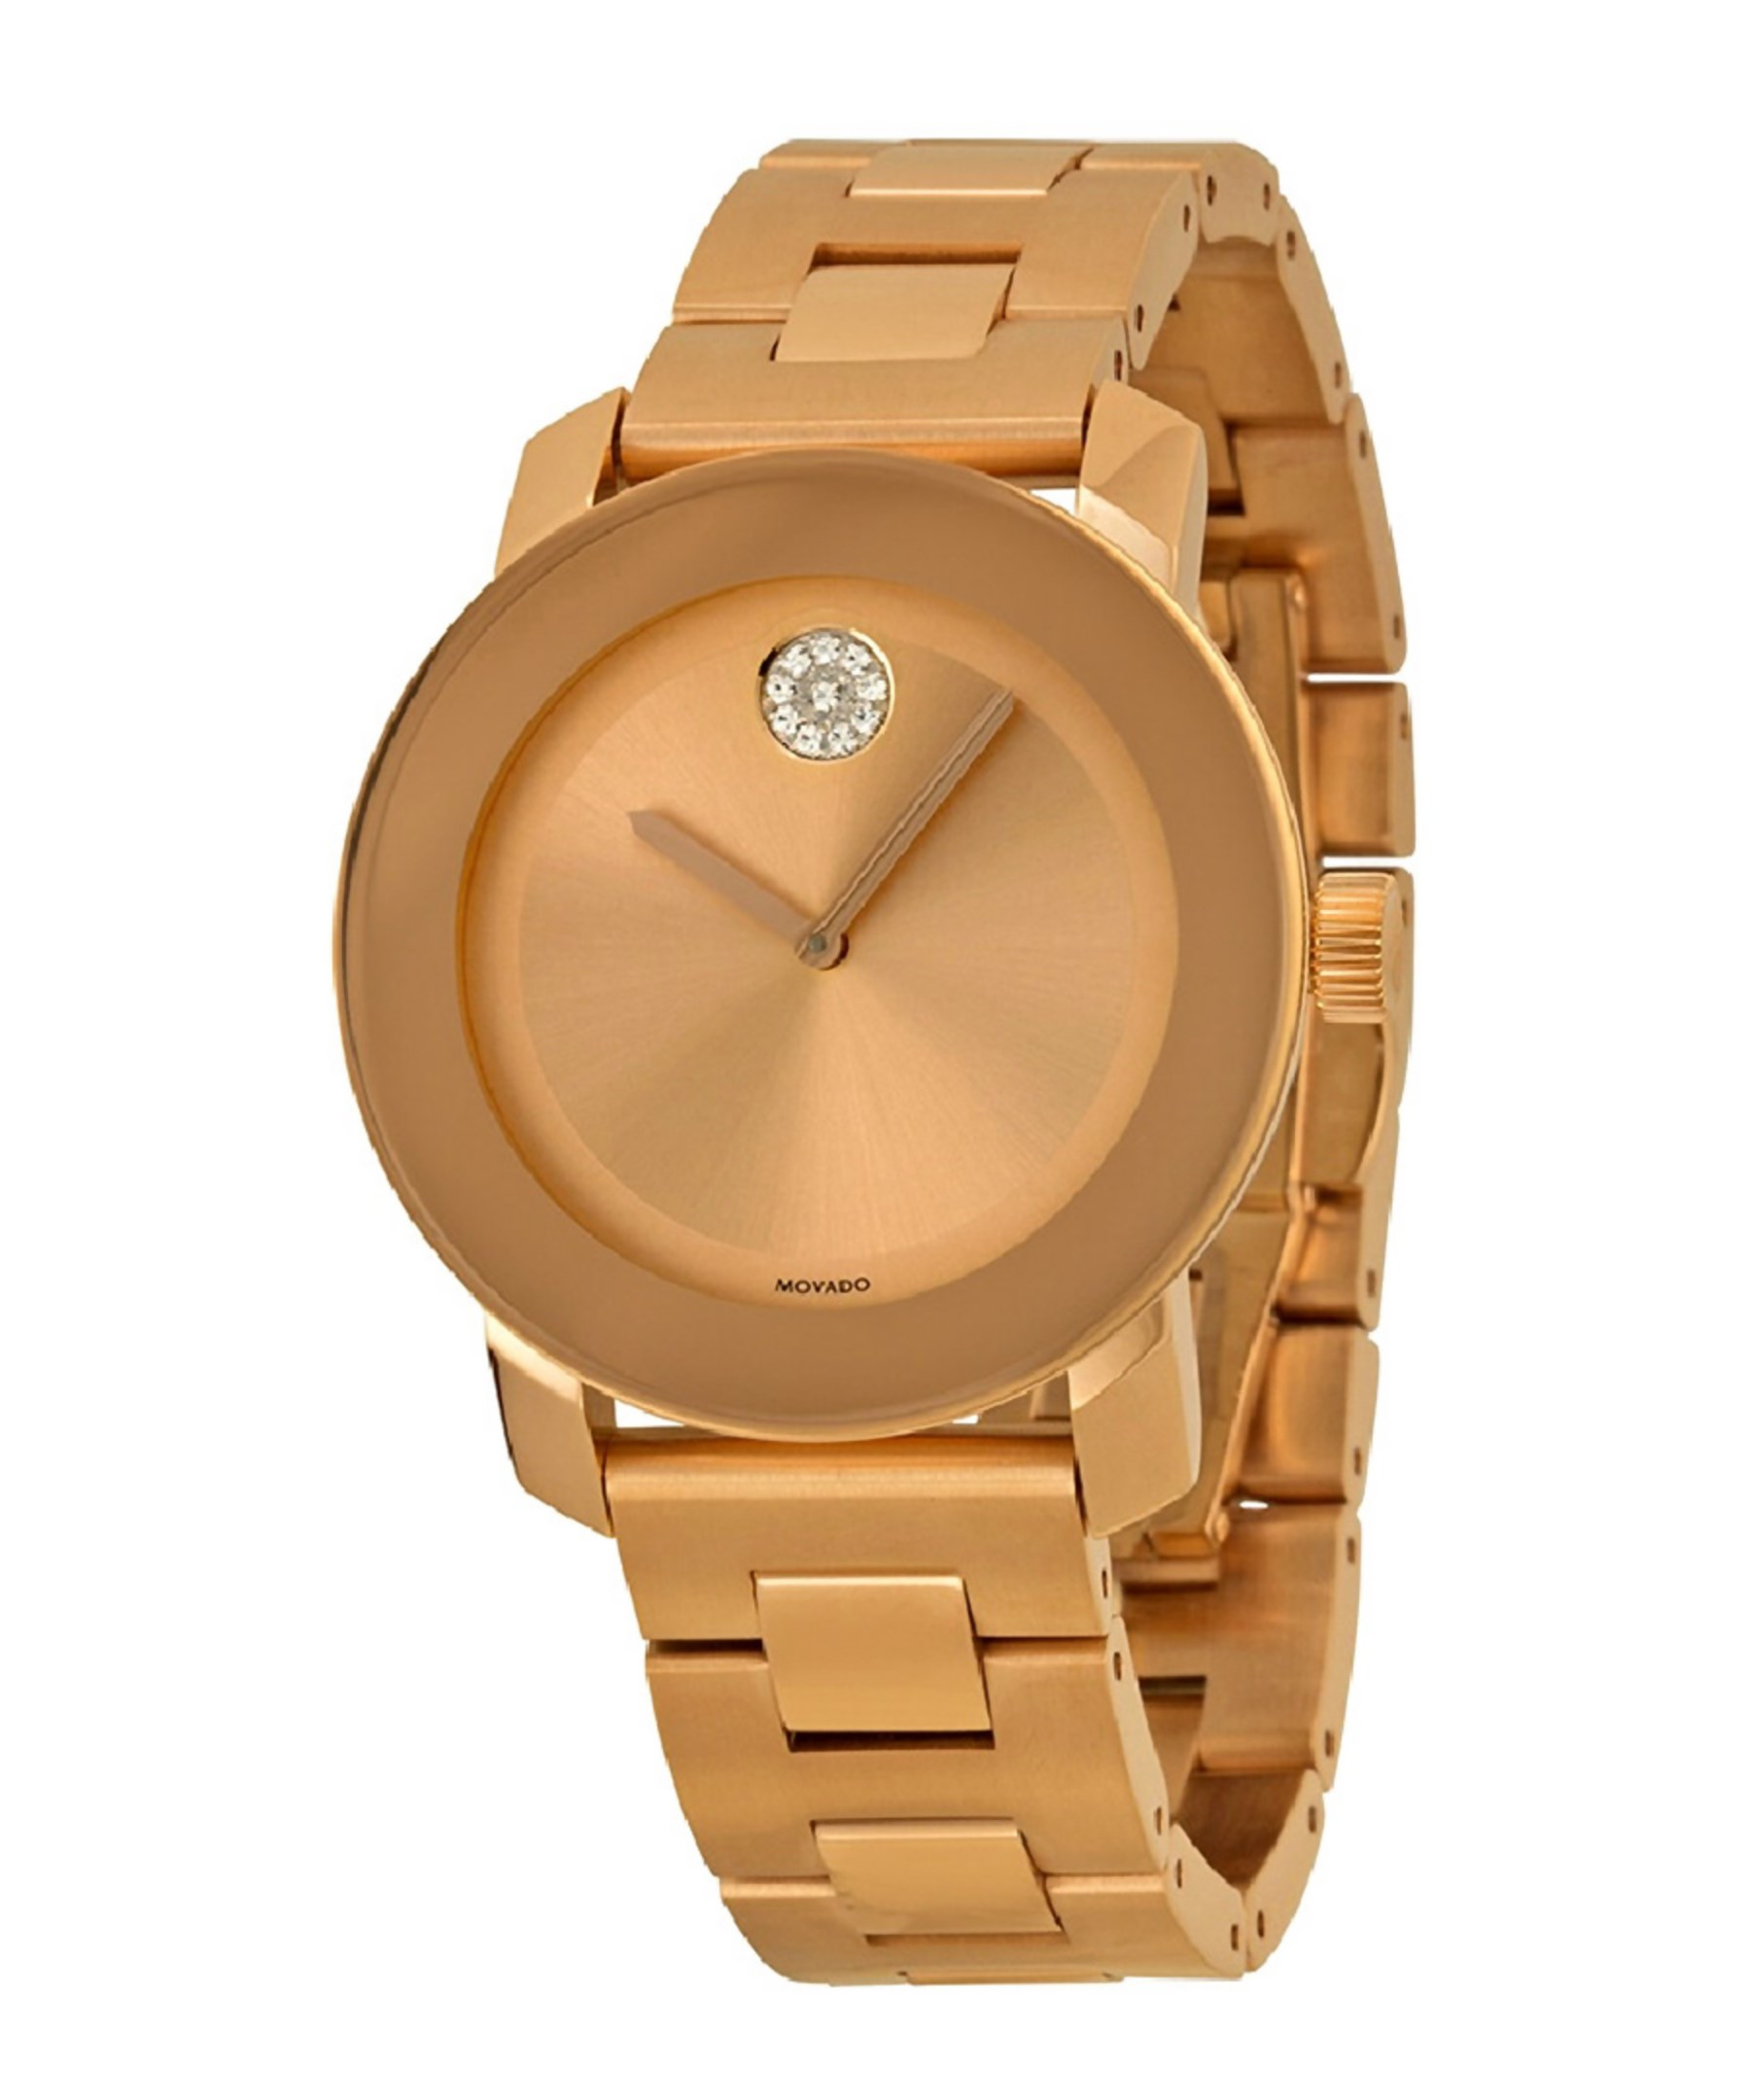 Movado Women S Bold Watch In Metallic Gold Save 41 Lyst